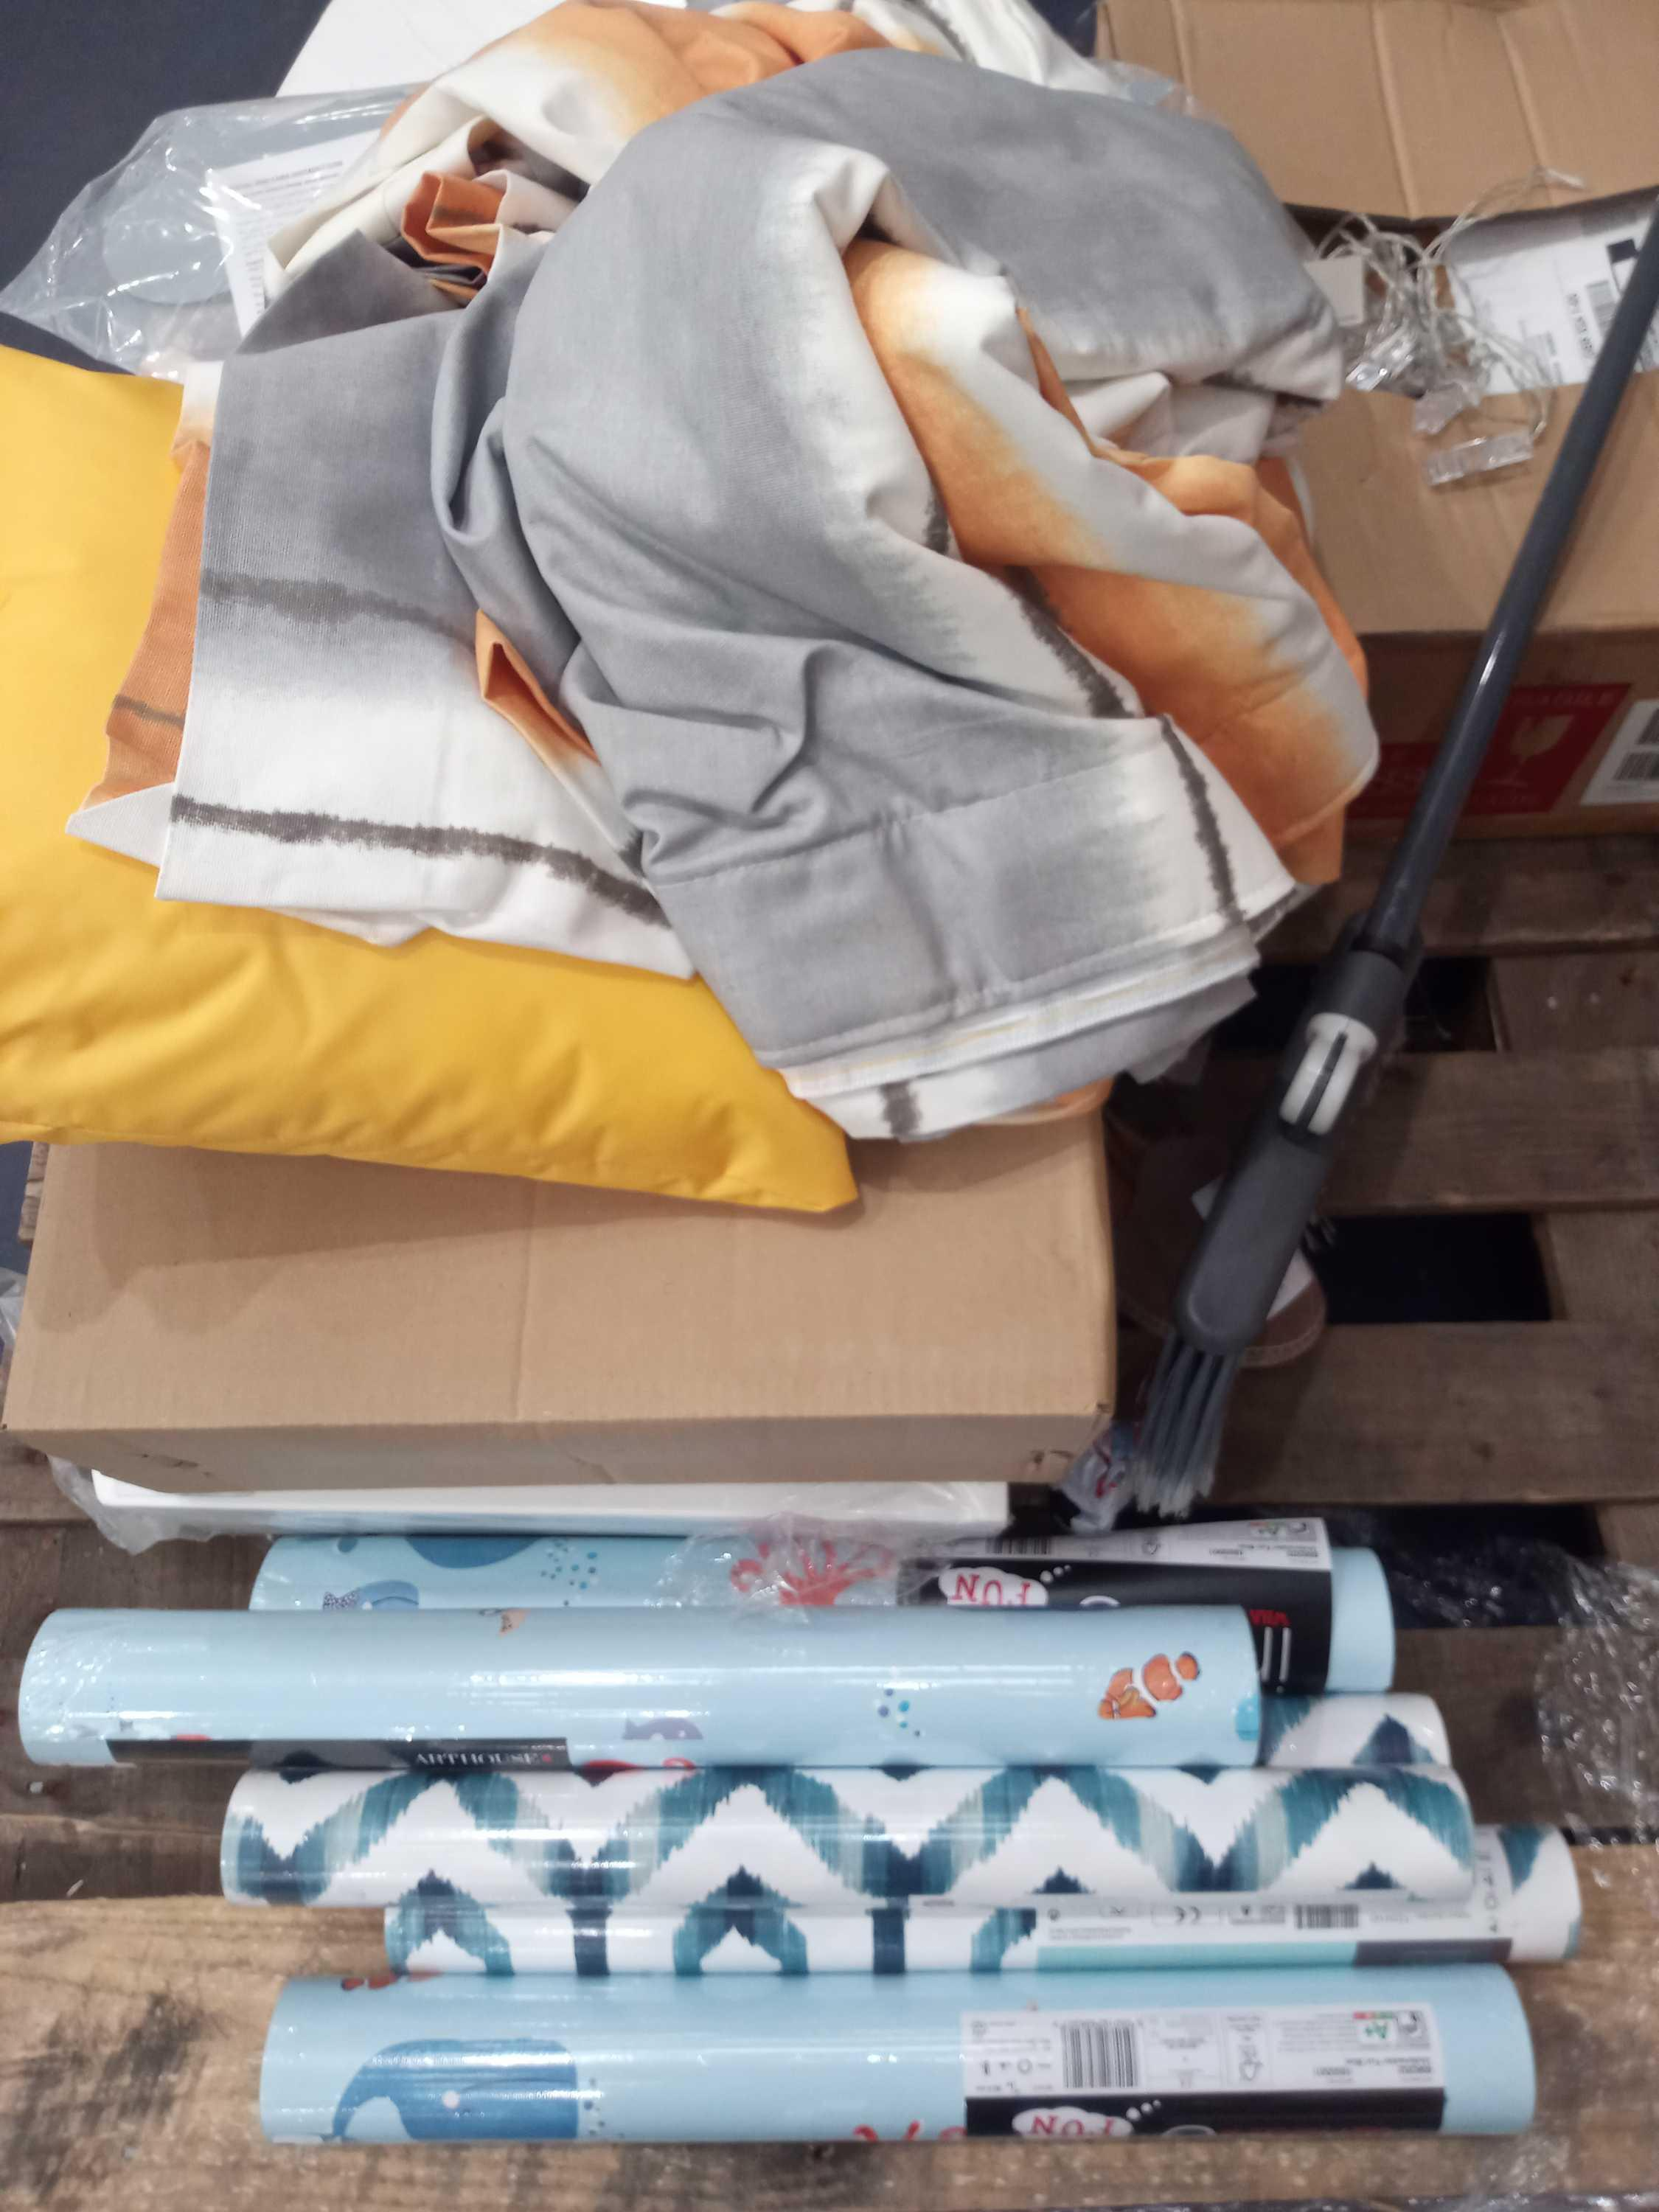 Rrp £550 Pallet To Contain A Large Assortment Of Items - Image 2 of 2